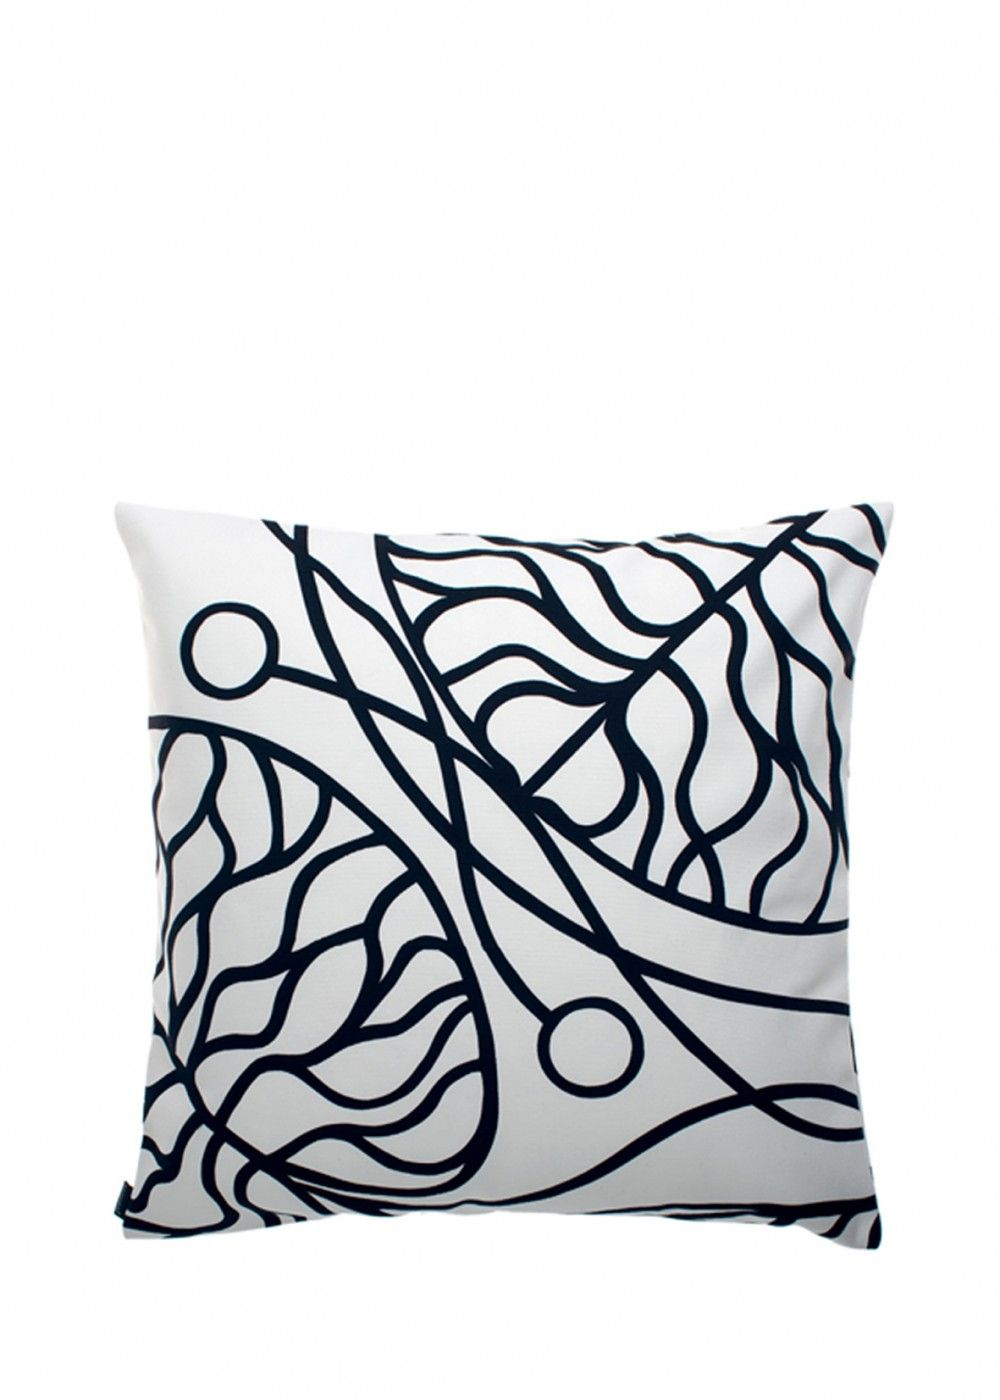 Paarse Sierkussens Bottna Cushion Cover Seats And Cushions Marimekko For The